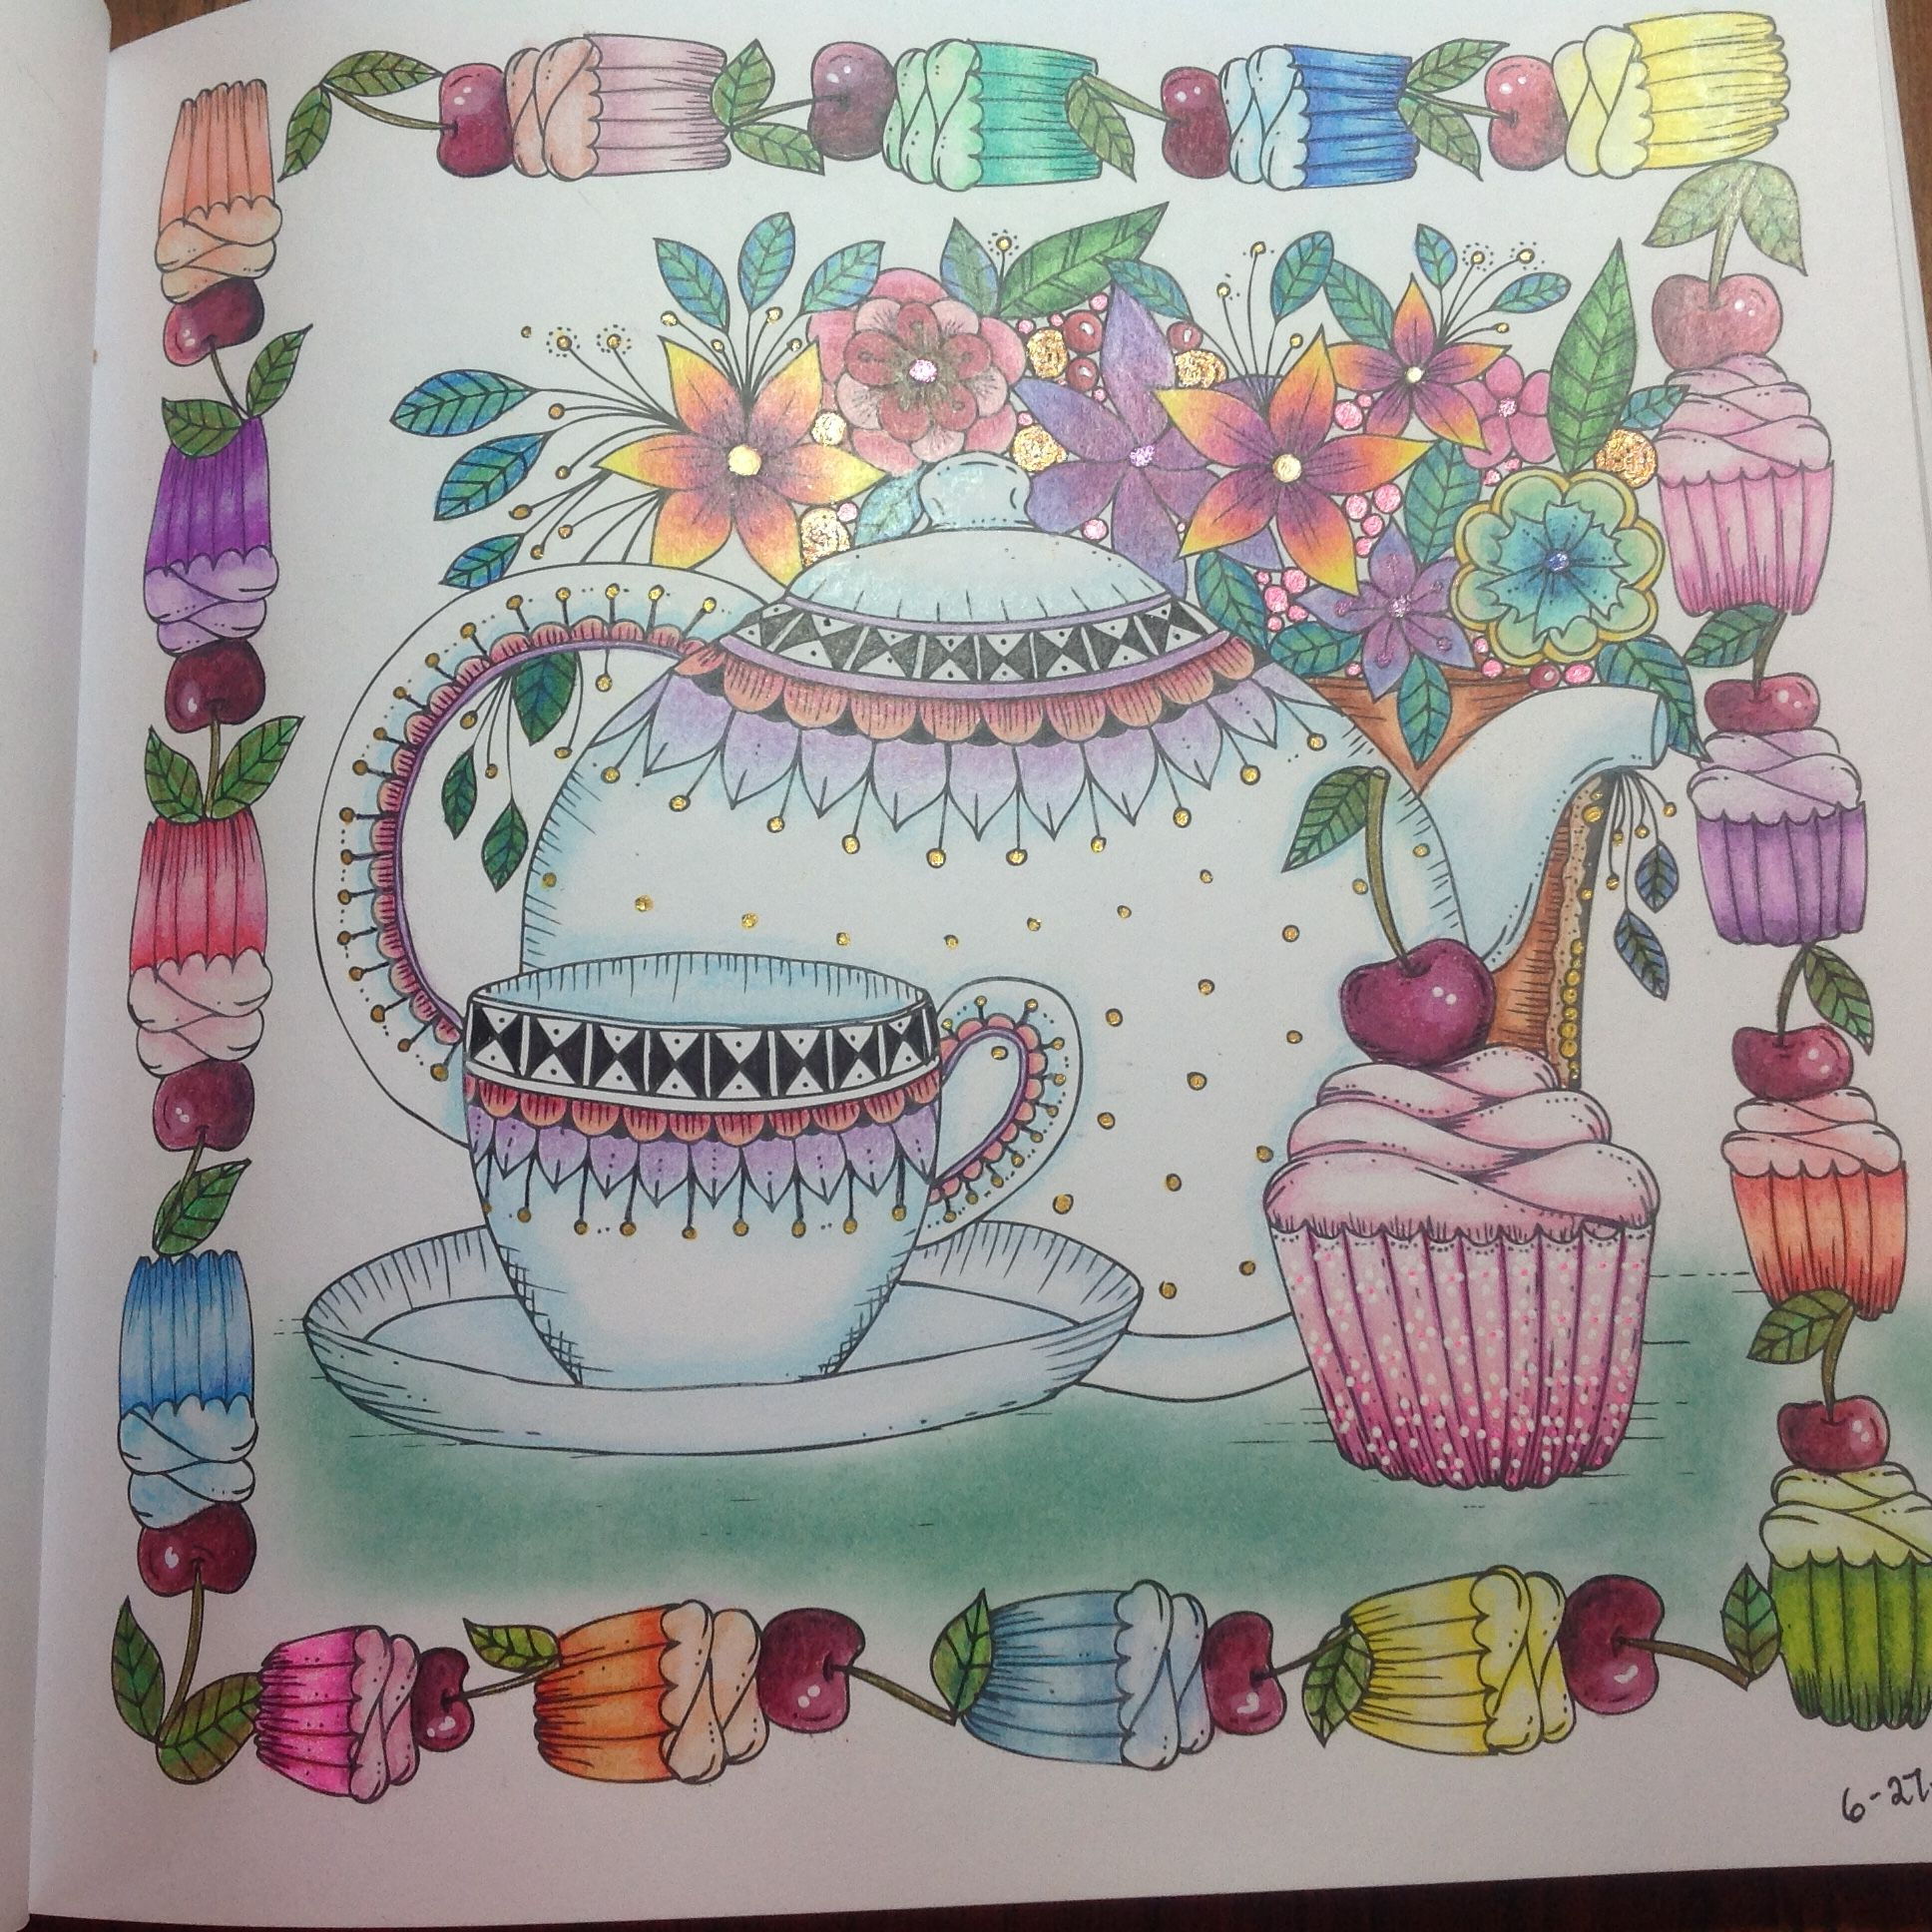 the magic path coloring book my coloring pages pinterest